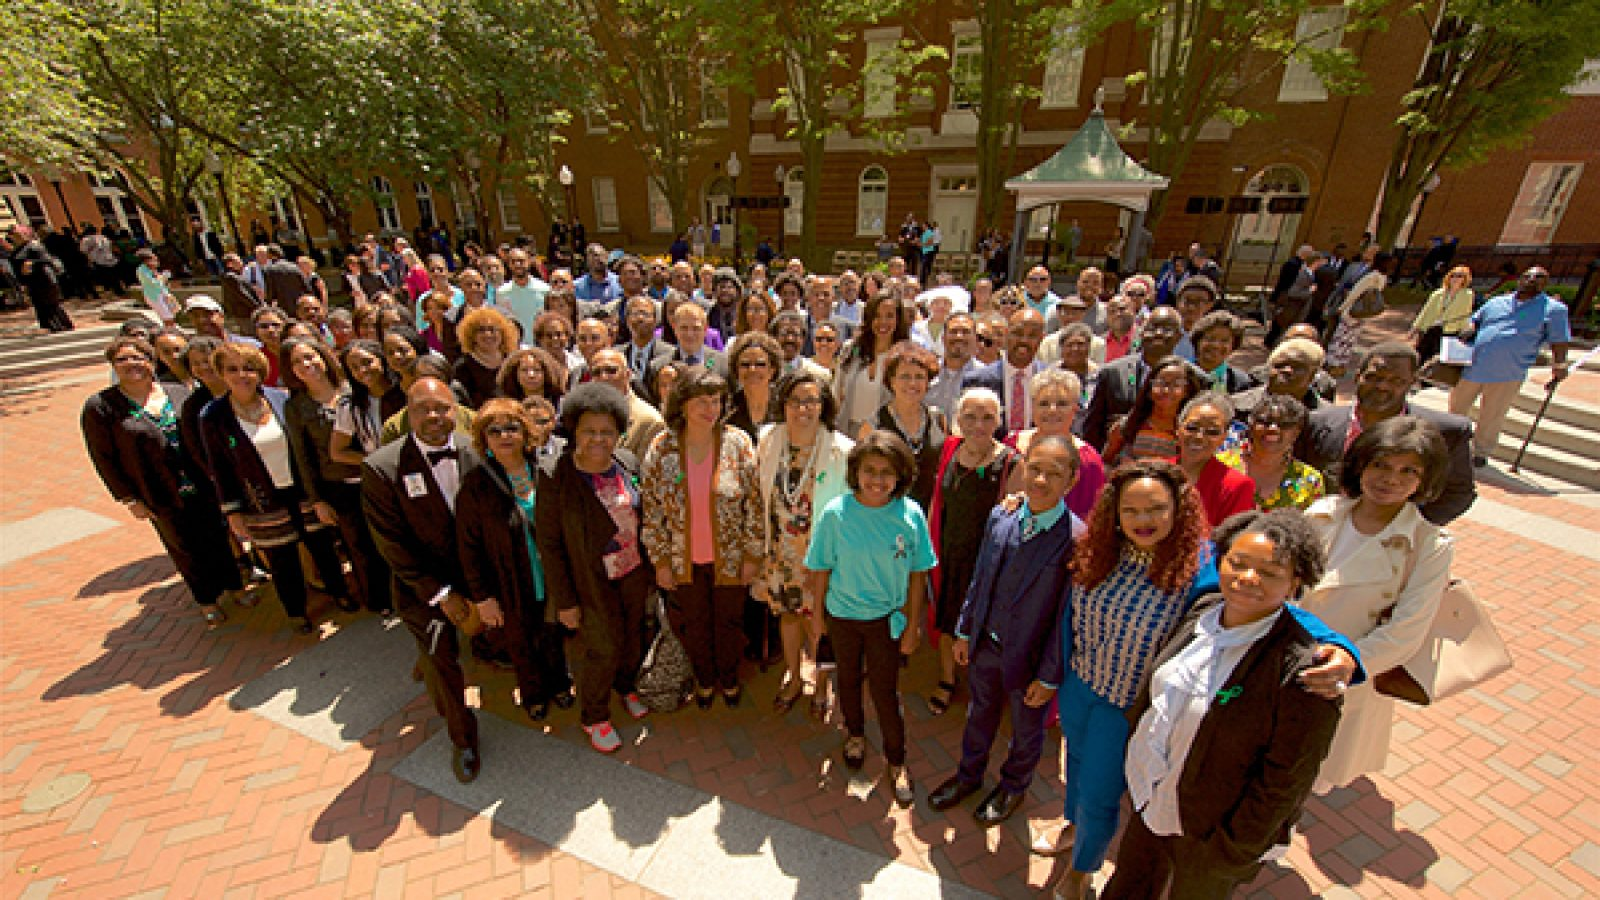 Descendants of the more than 270 enslaved individuals sold by the Maryland Province of Jesuits stand in front of Isaac Hawkins Hall